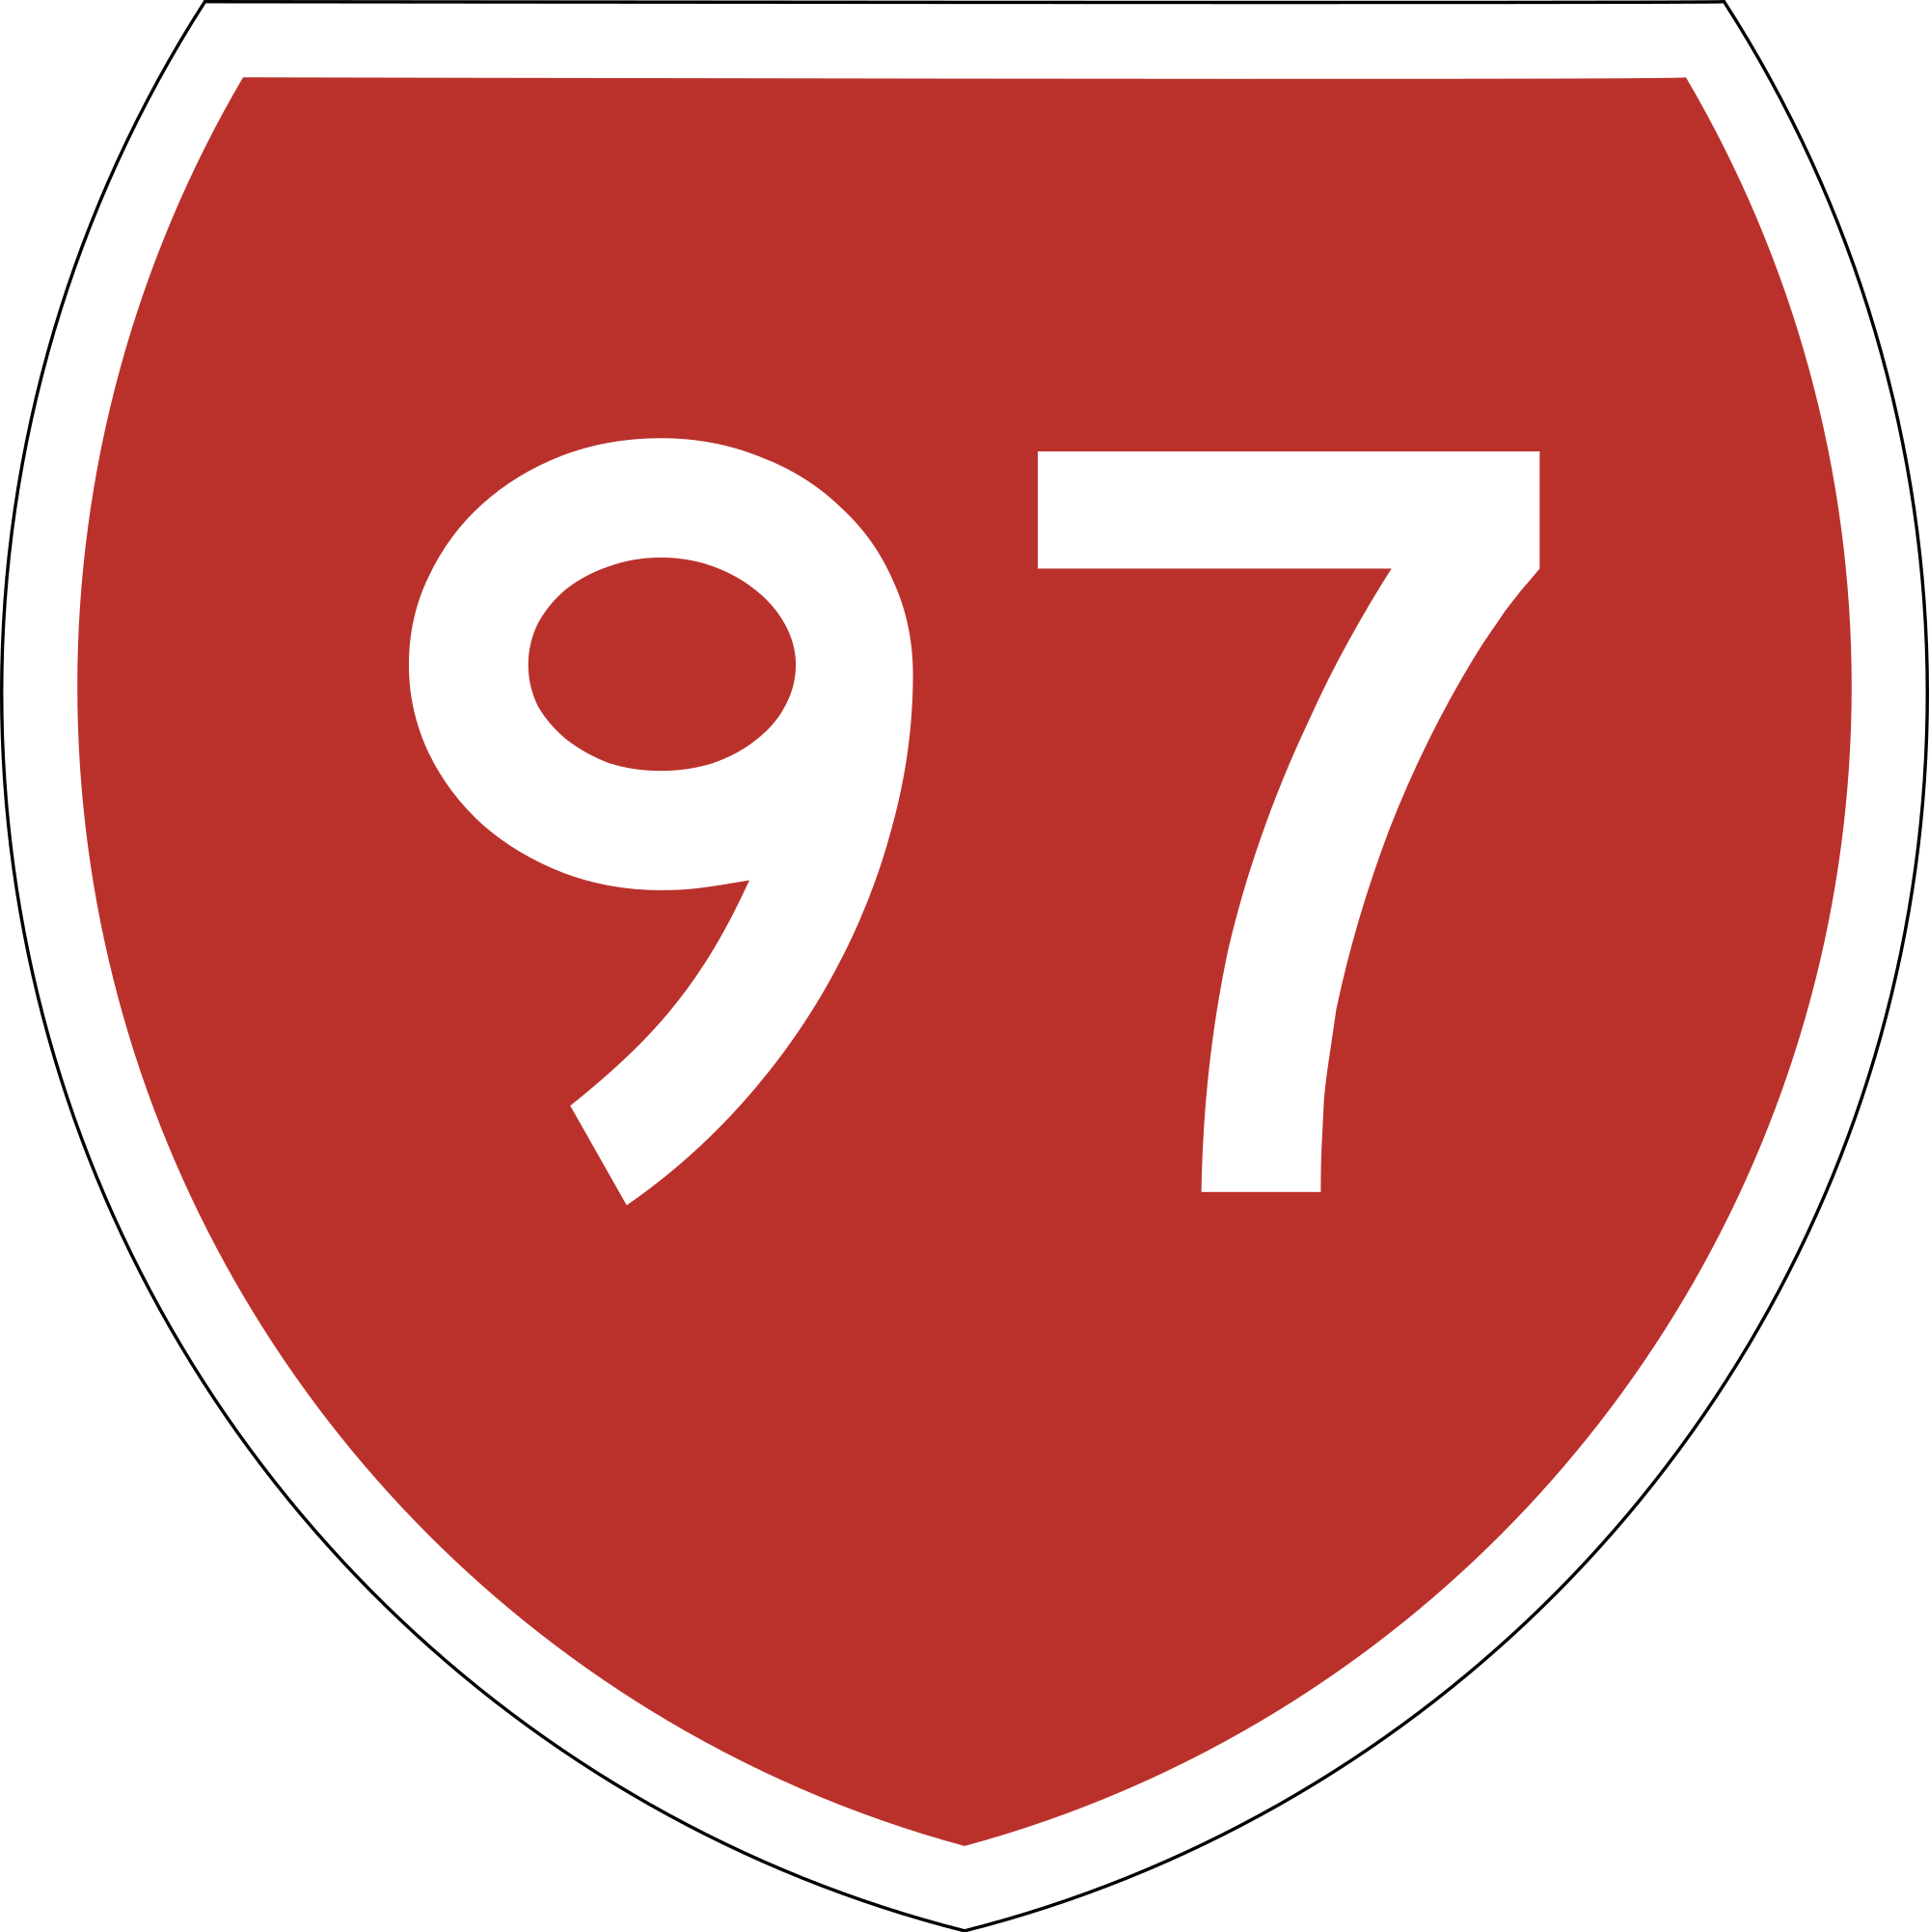 Datei:State Highway 97 NZ.svg.